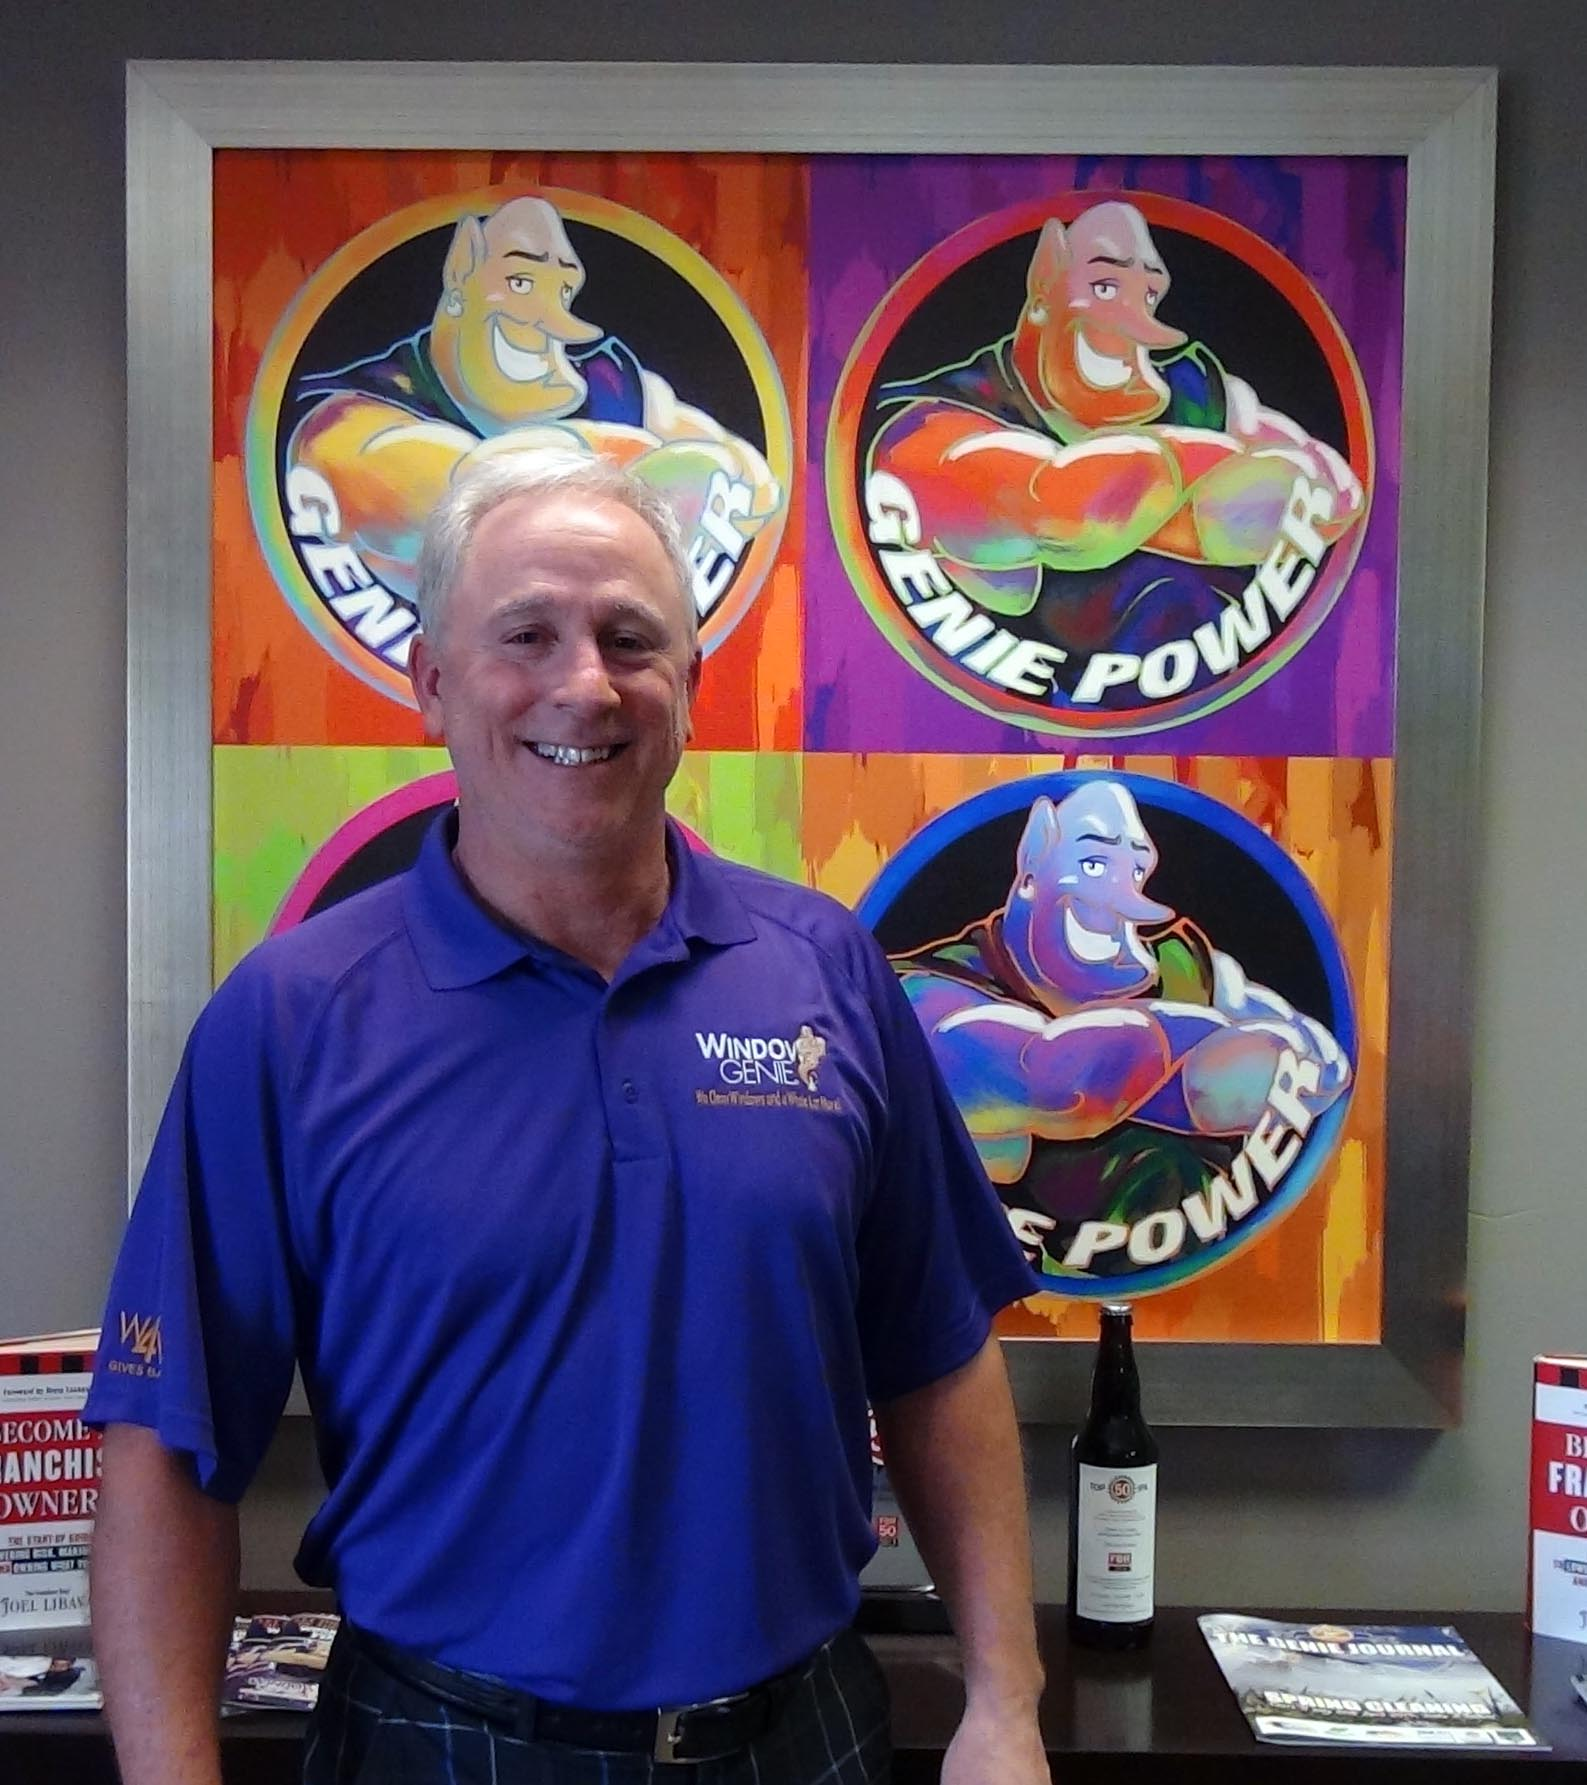 Local Veteran Opens Window Genie Franchise In Myrtle Beach